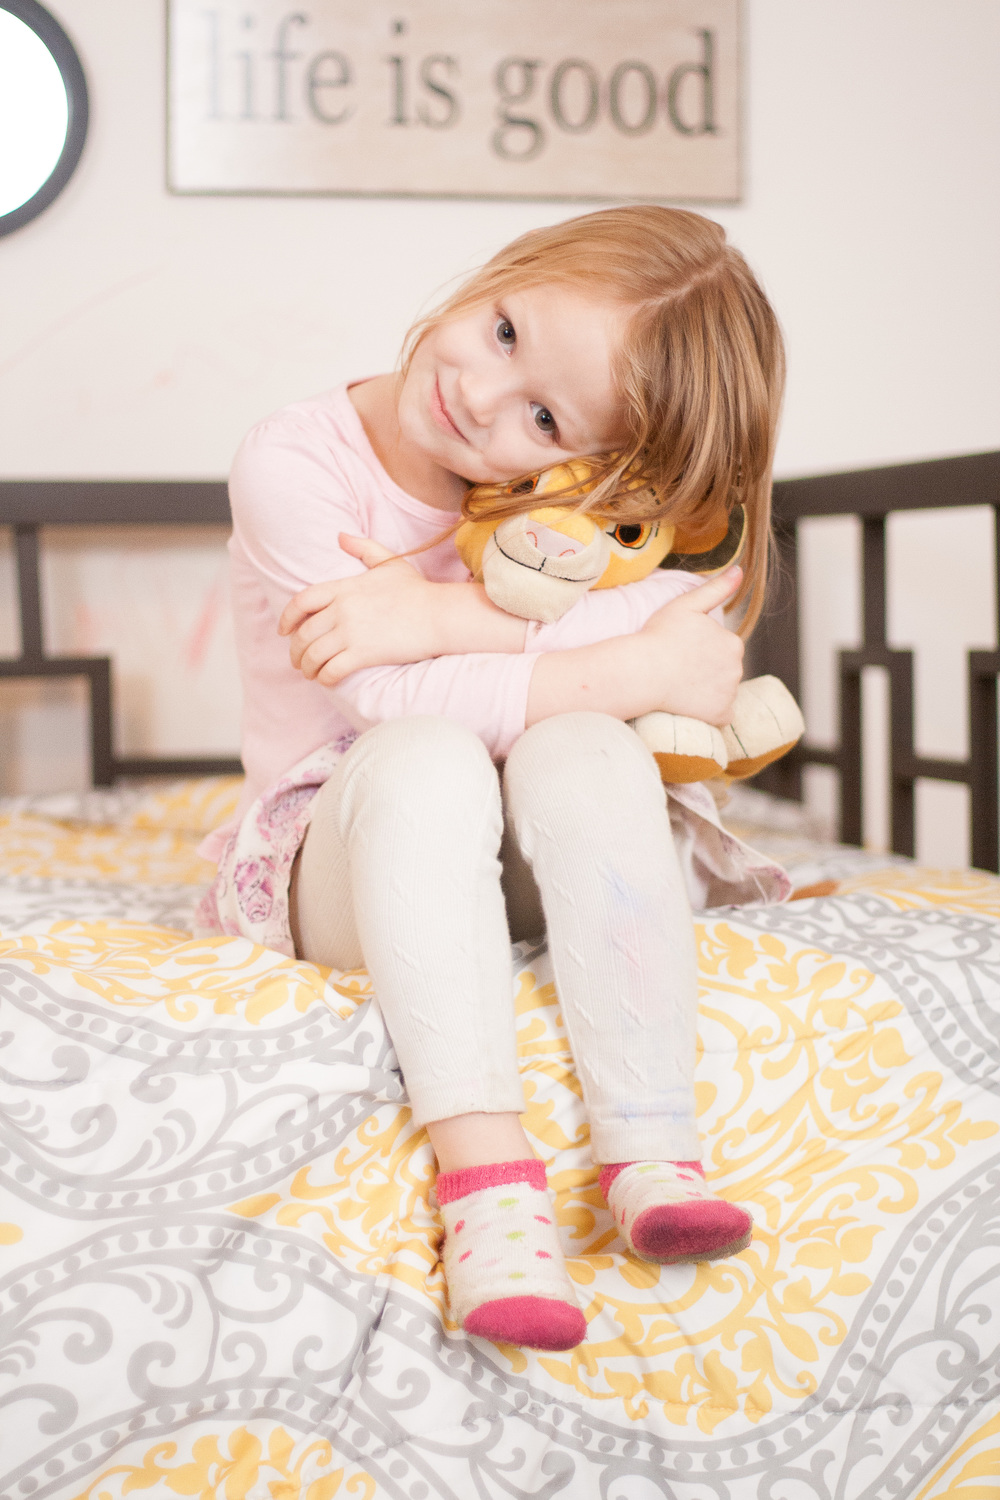 Candid Child snuggling stuffed animal